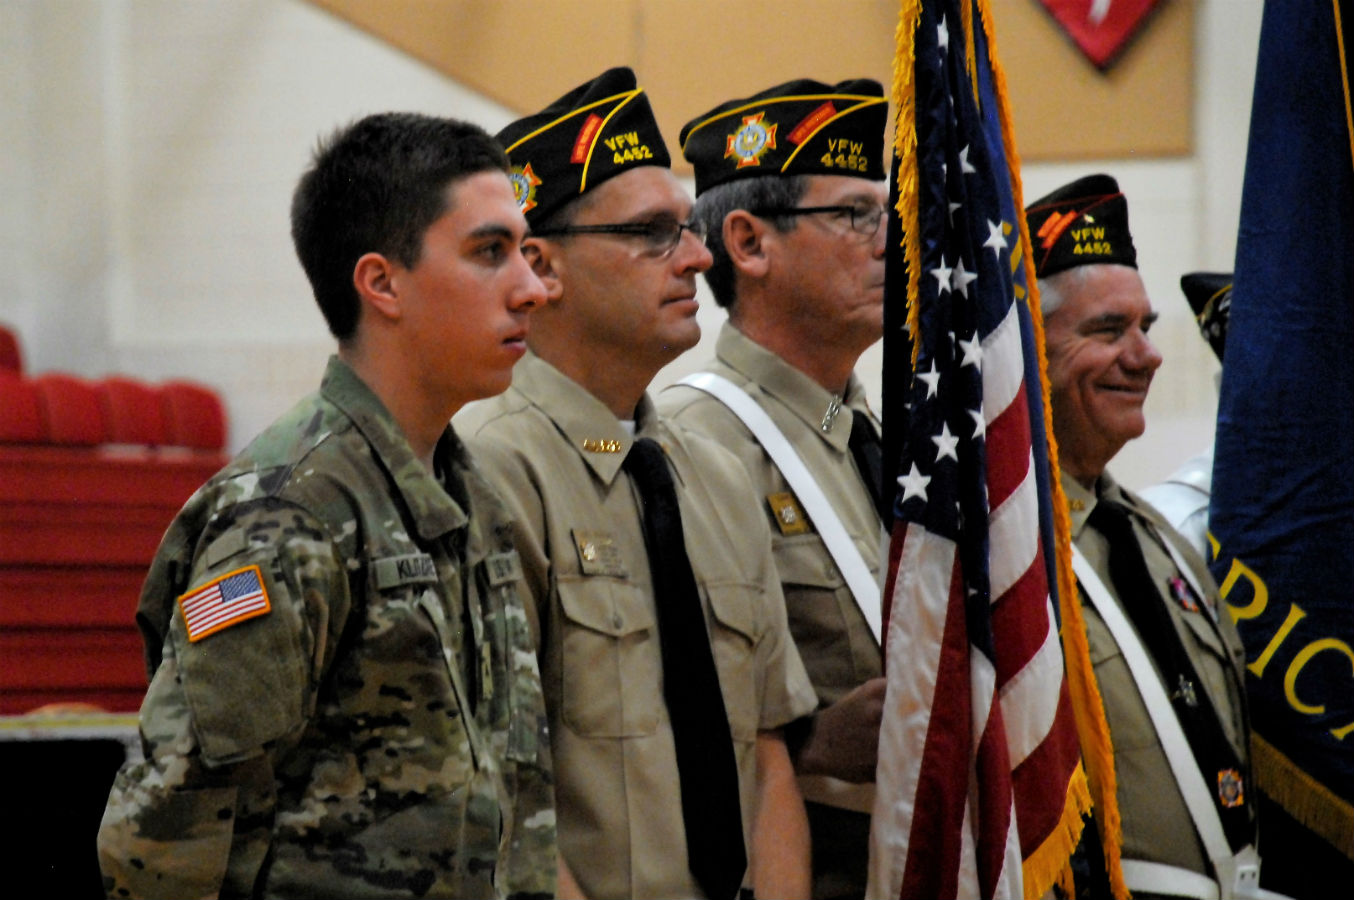 Soldiers, old and new, stand together on Veteran's Day.